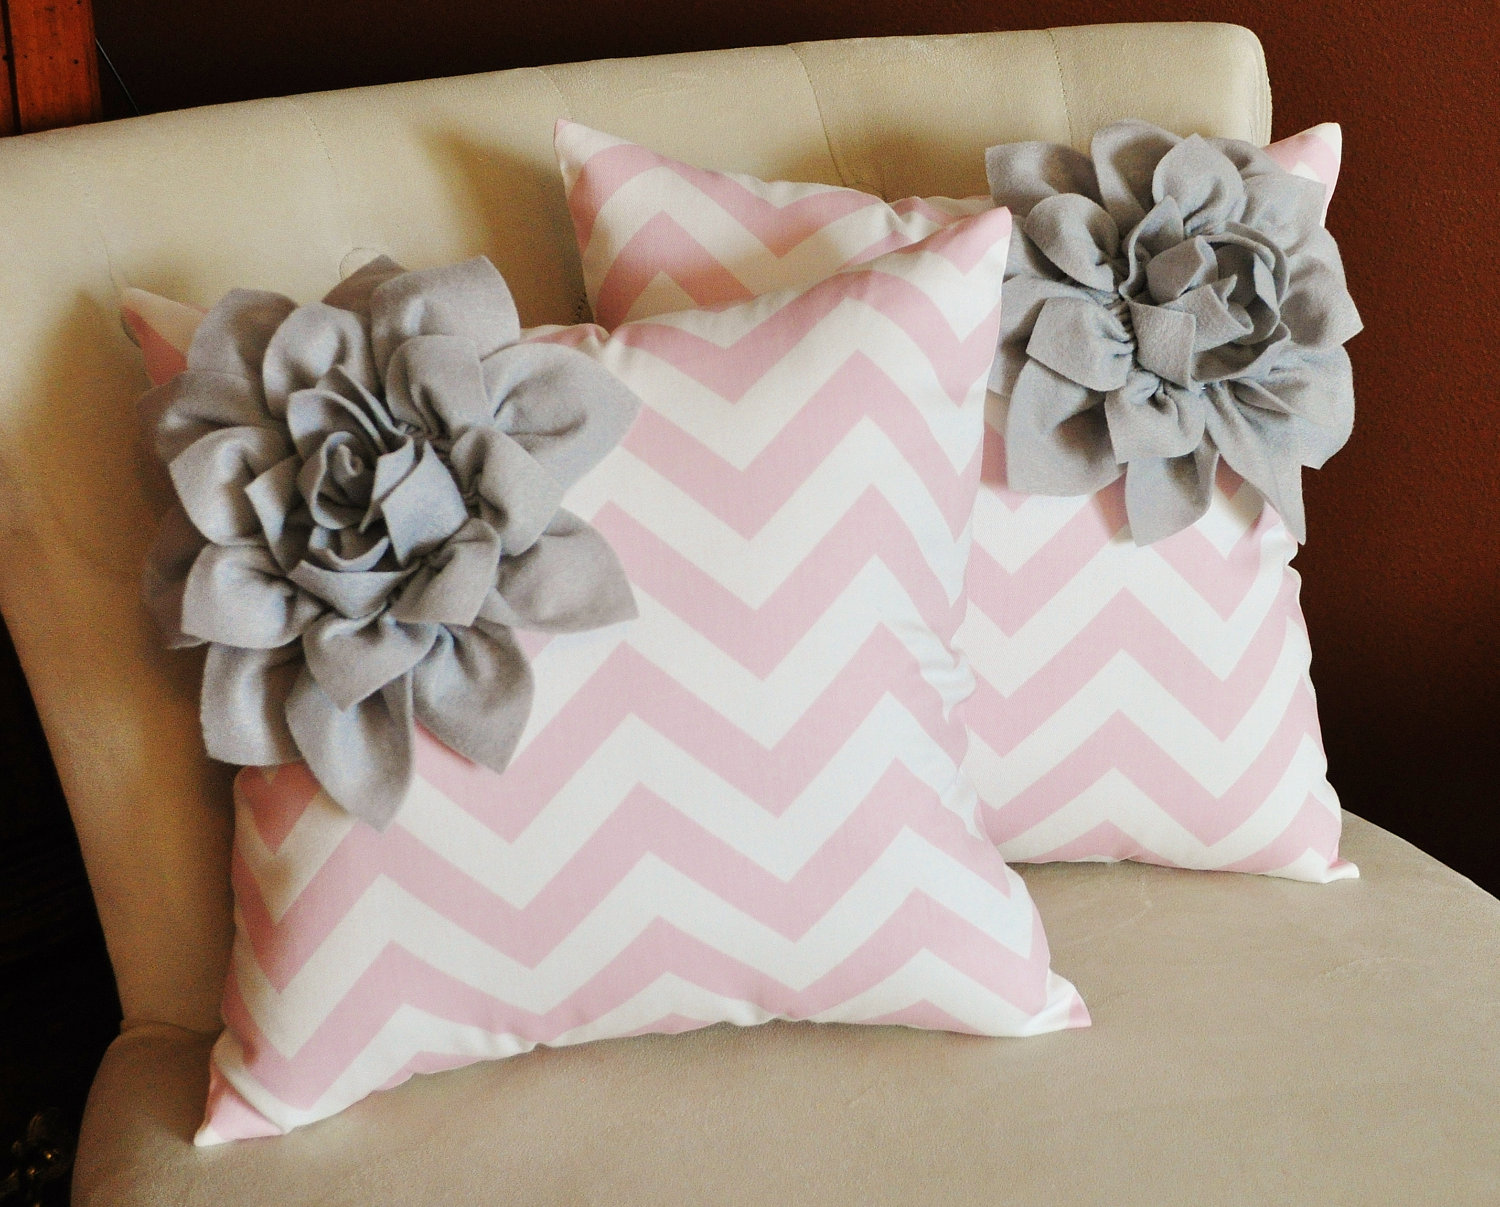 15 Handmade Home Decoration Gifts for Mother\'s Day - Style Motivation